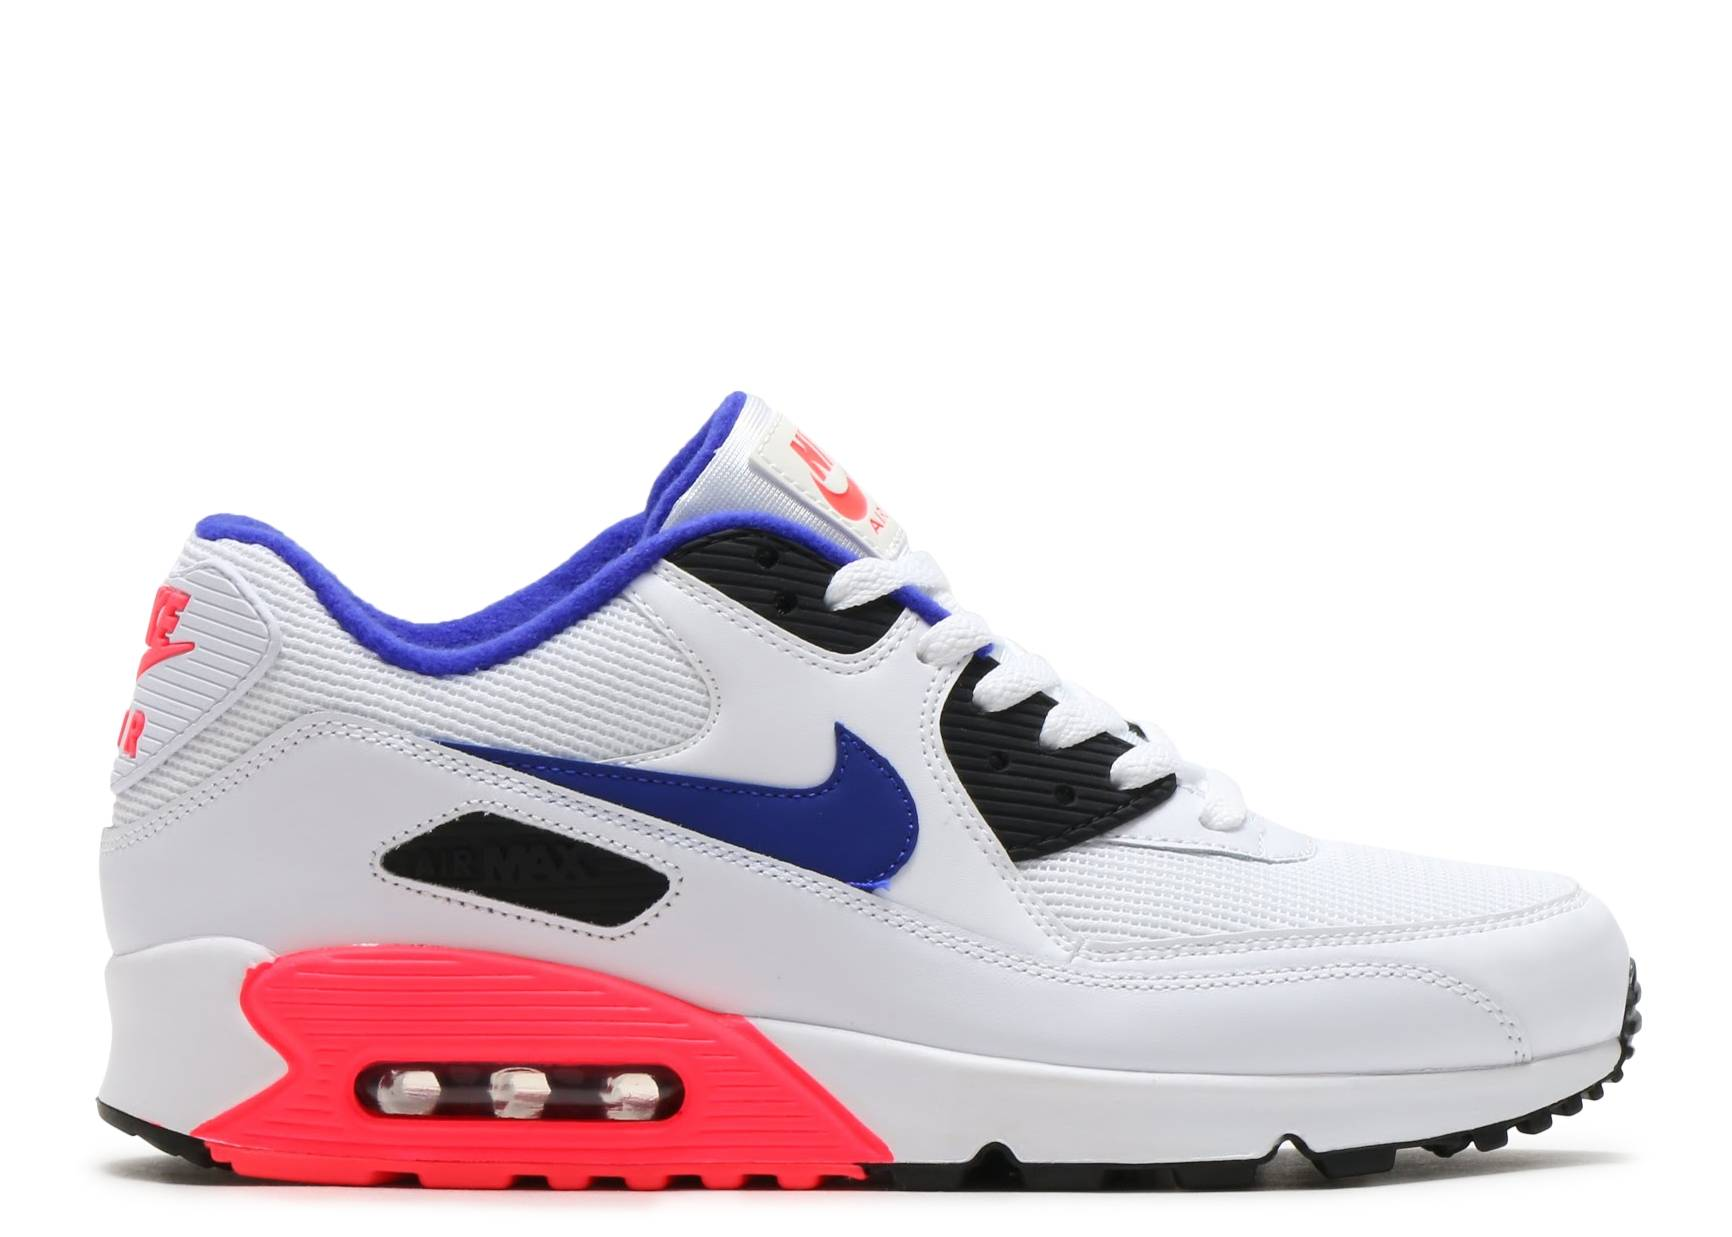 0fac7f8dd1 Air Max 90 Essential - Nike - 537384 136 - white/ultramarine-solar ...